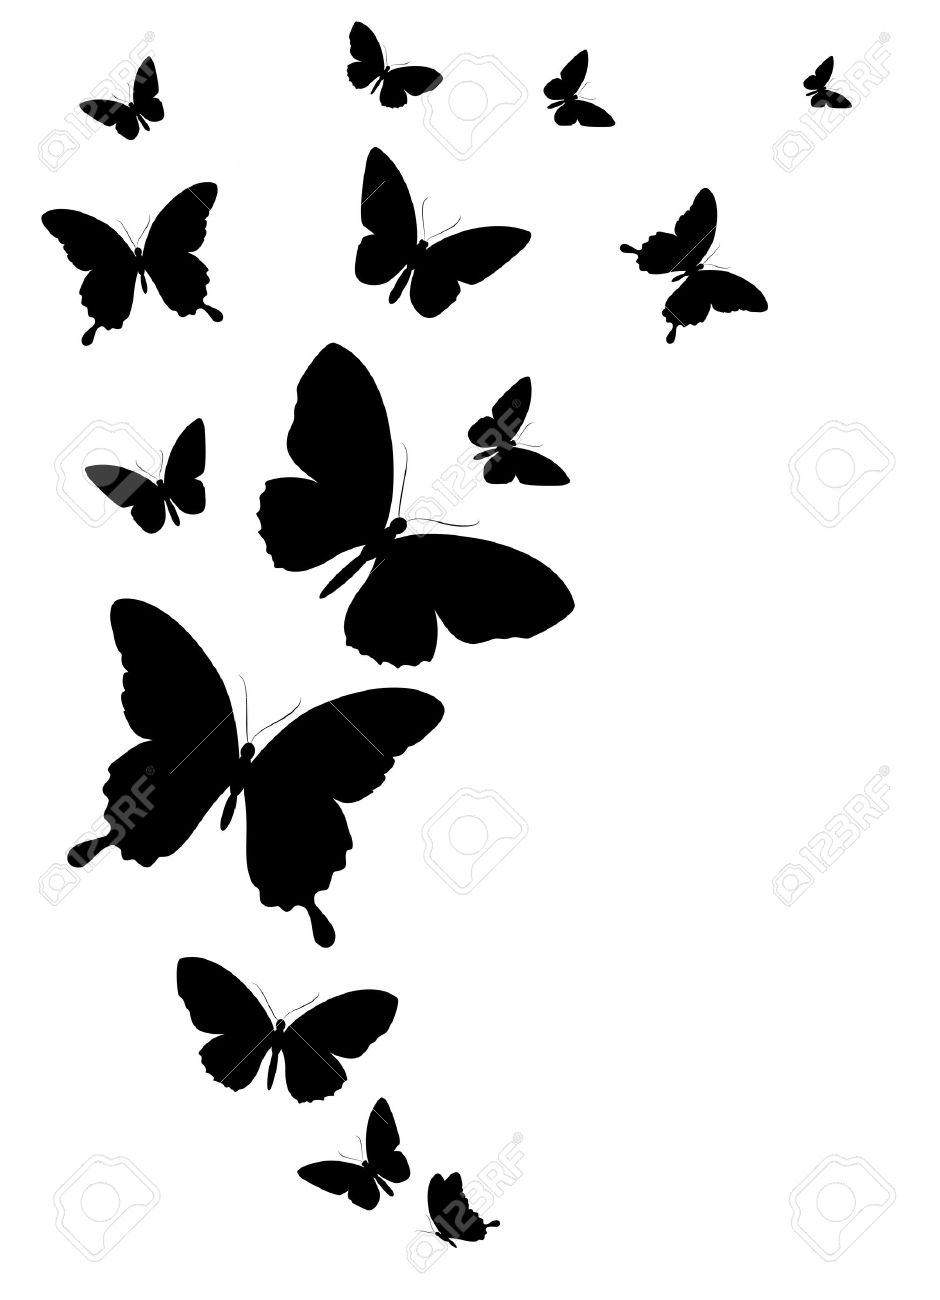 butterflies design.